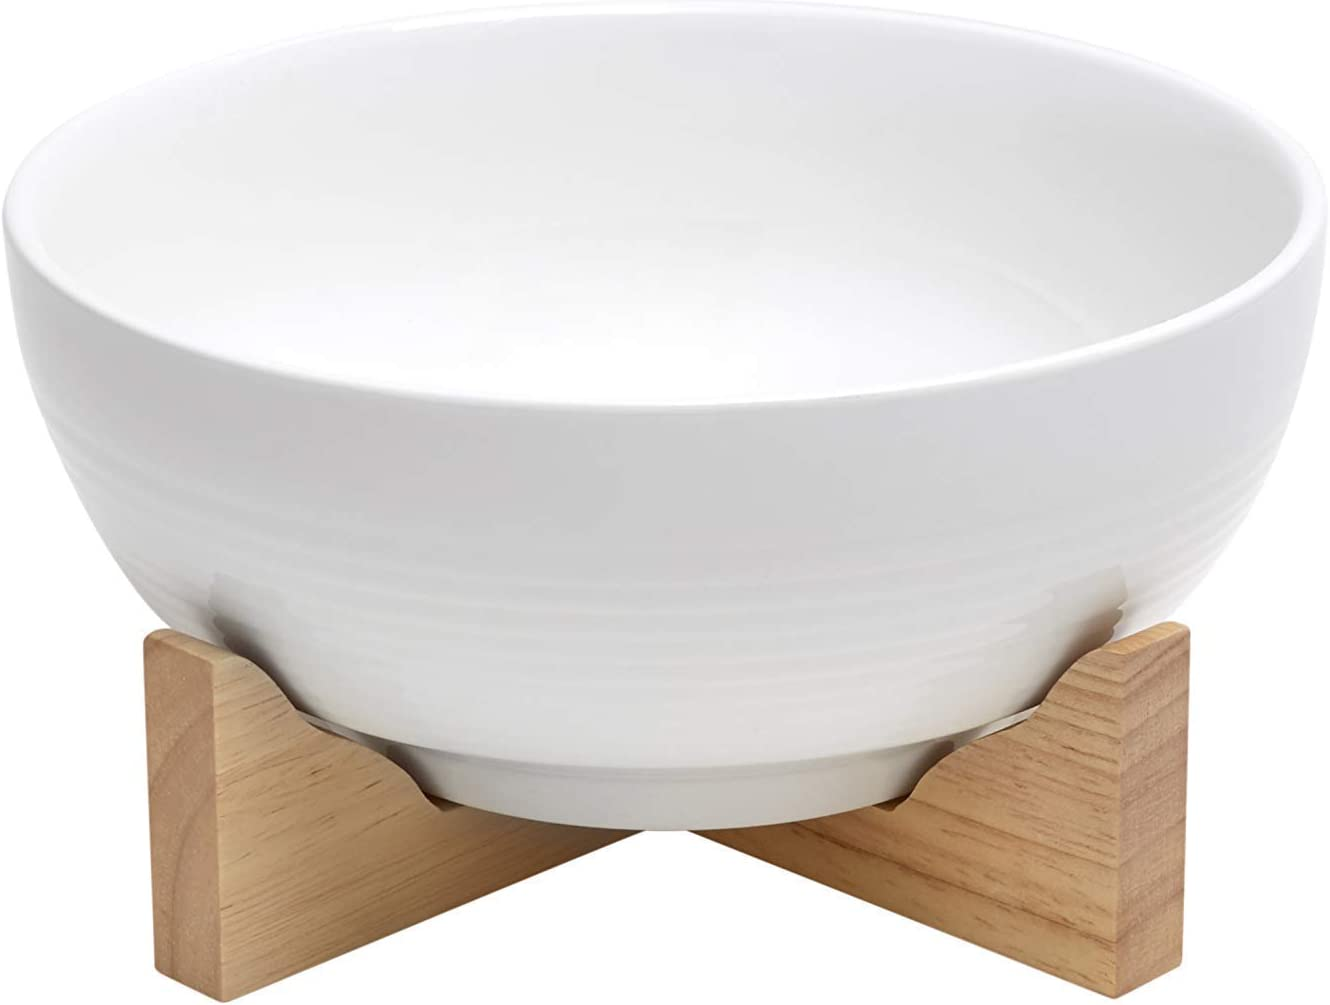 """Whonnock Home 7.5 """" white oven-to-table porcelain serving bowl with solid wood stand, thick non slip design"""